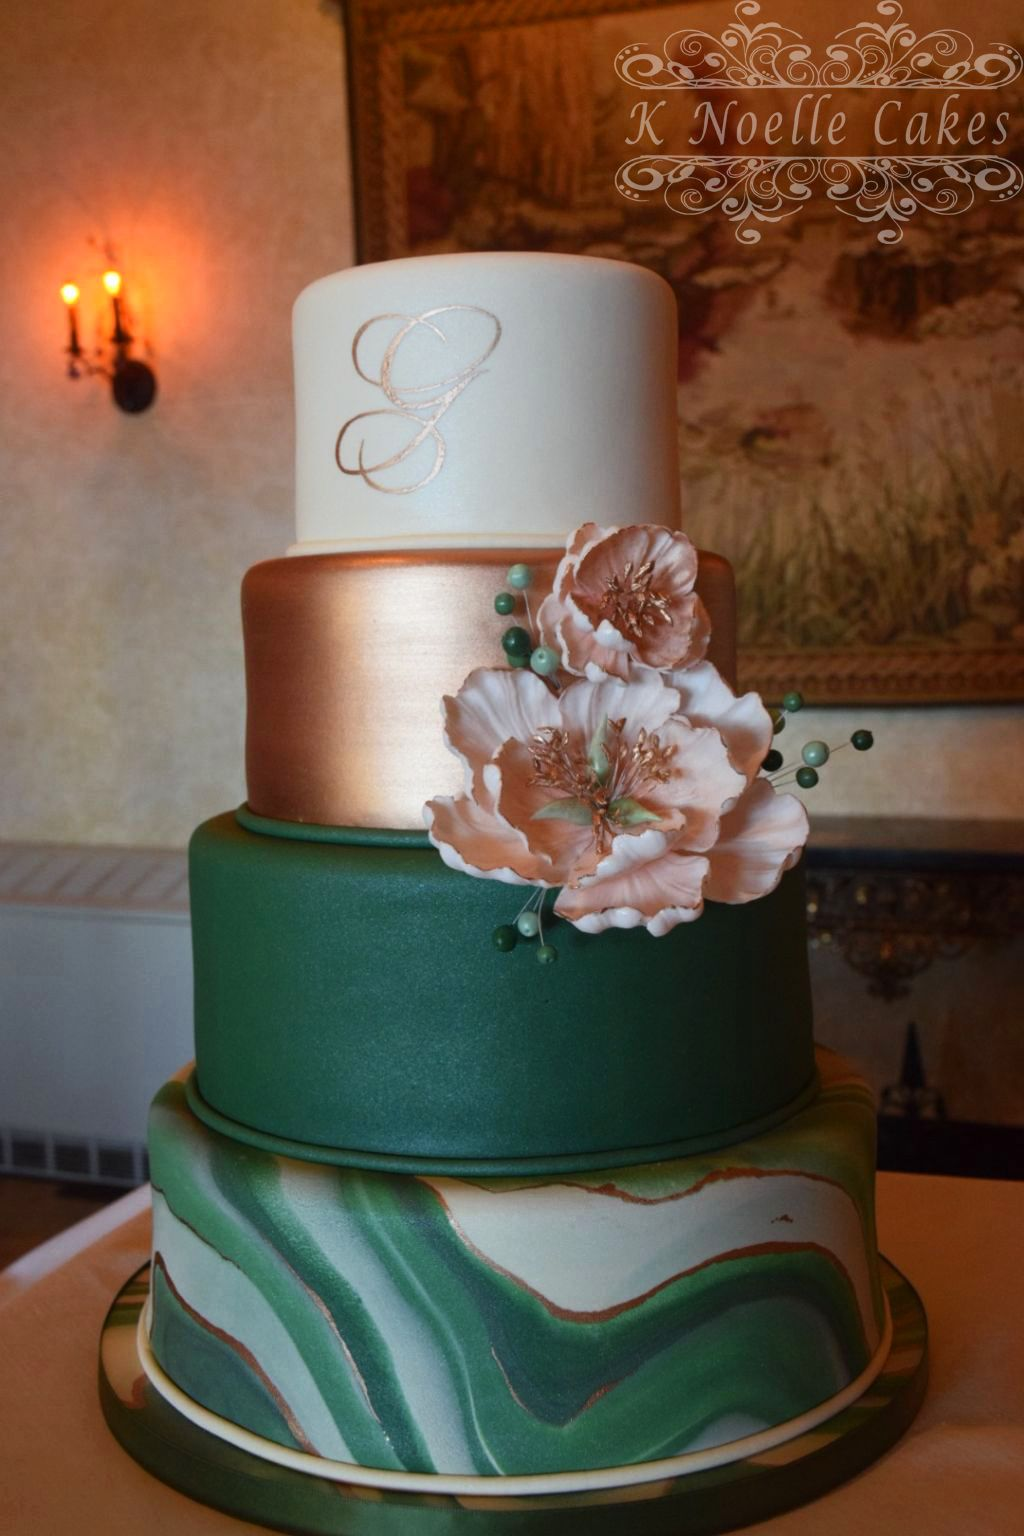 Rose Gold Hunter Green And Marbled Wedding Cake By K Noelle Cakes